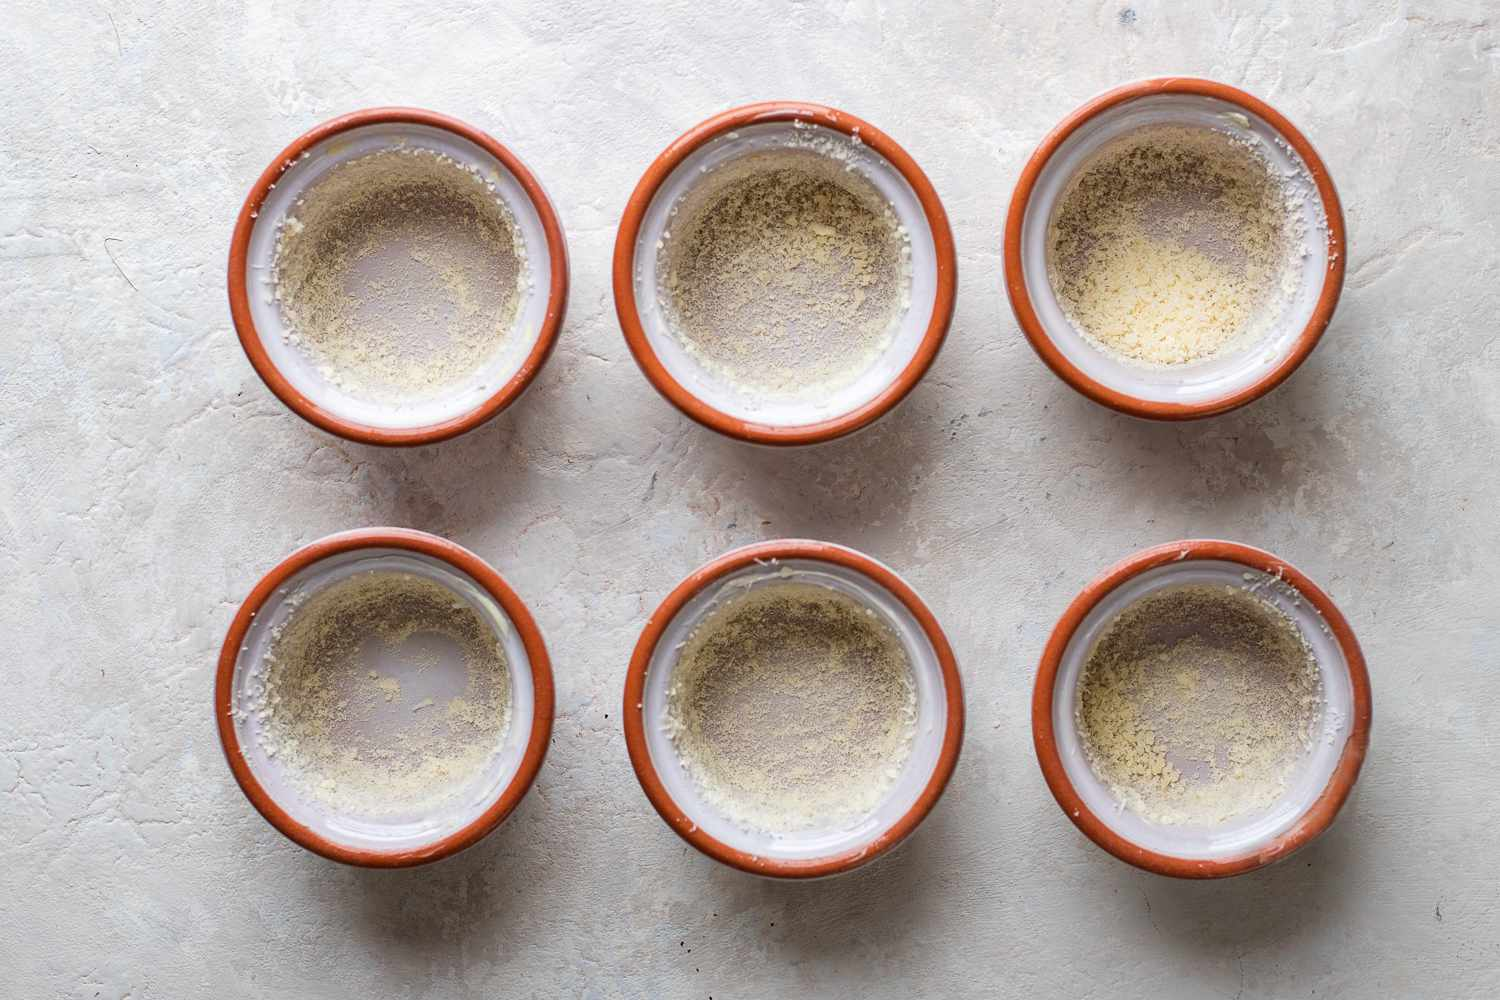 Sprinkle the buttered surface evenly with grated Parmesan cheese inside of a souffle ramekin